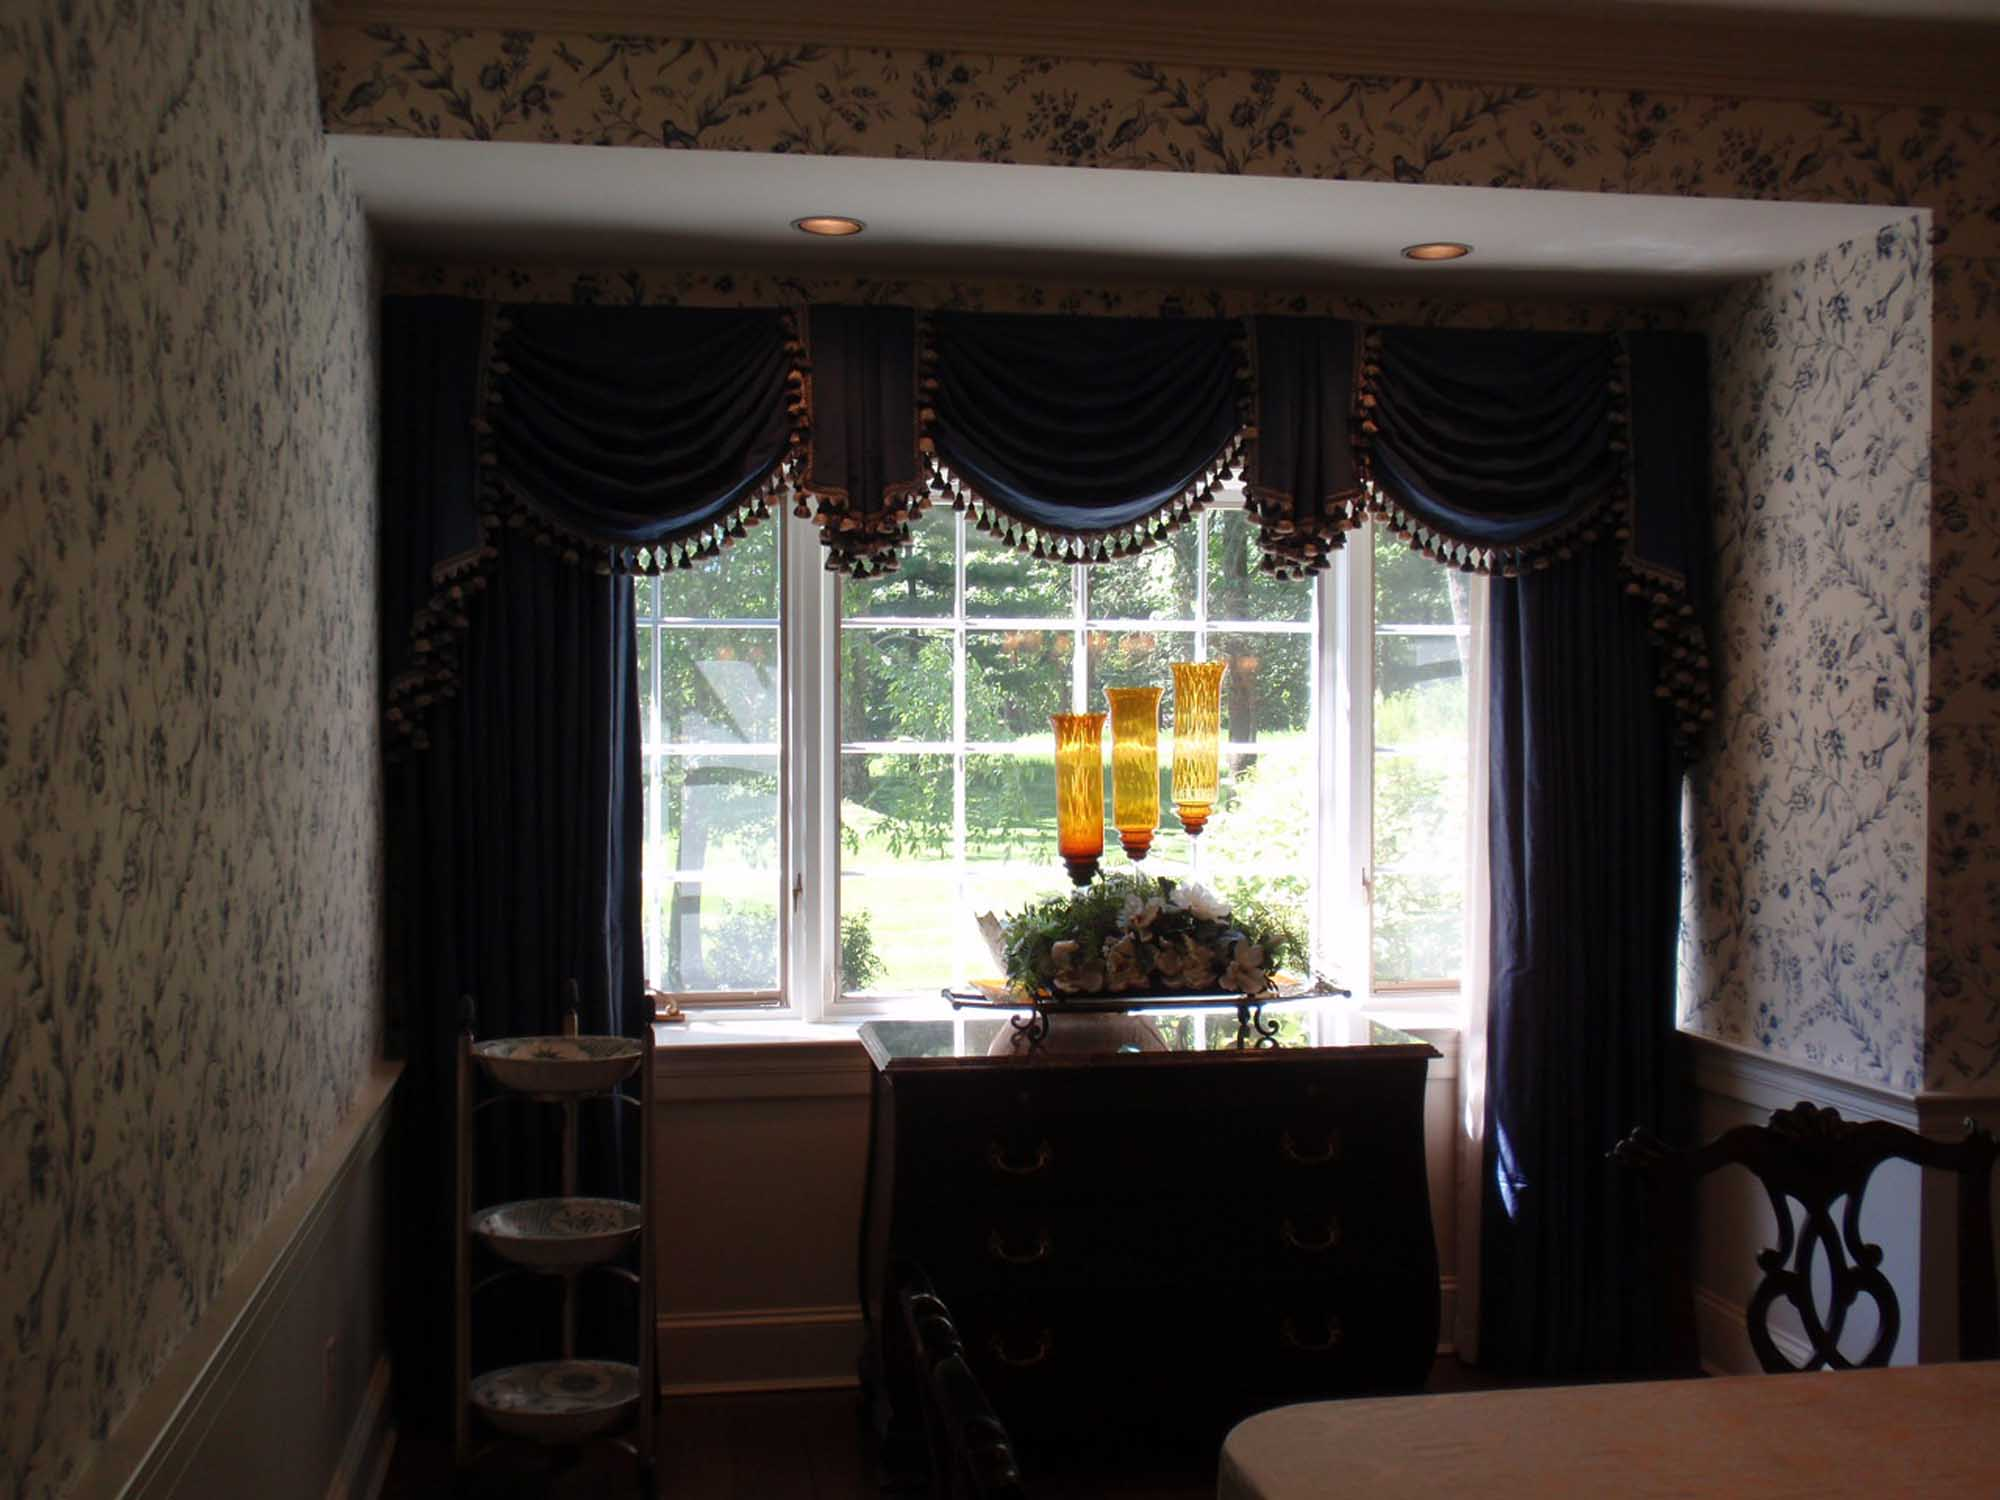 Dining area in printed wallpaper and blue curtains